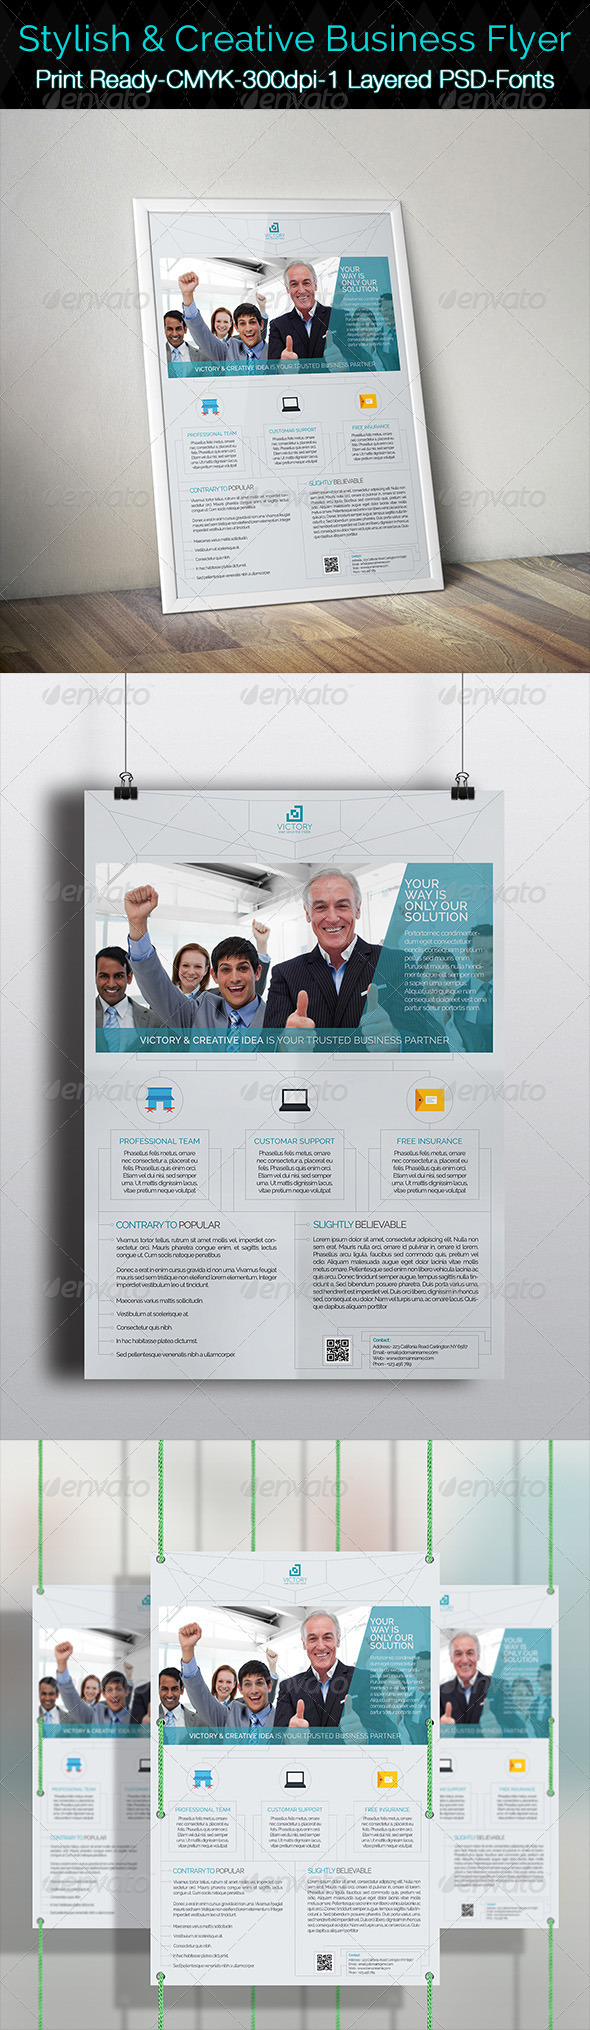 Stylish & Creative Business Flyer - Corporate Flyers